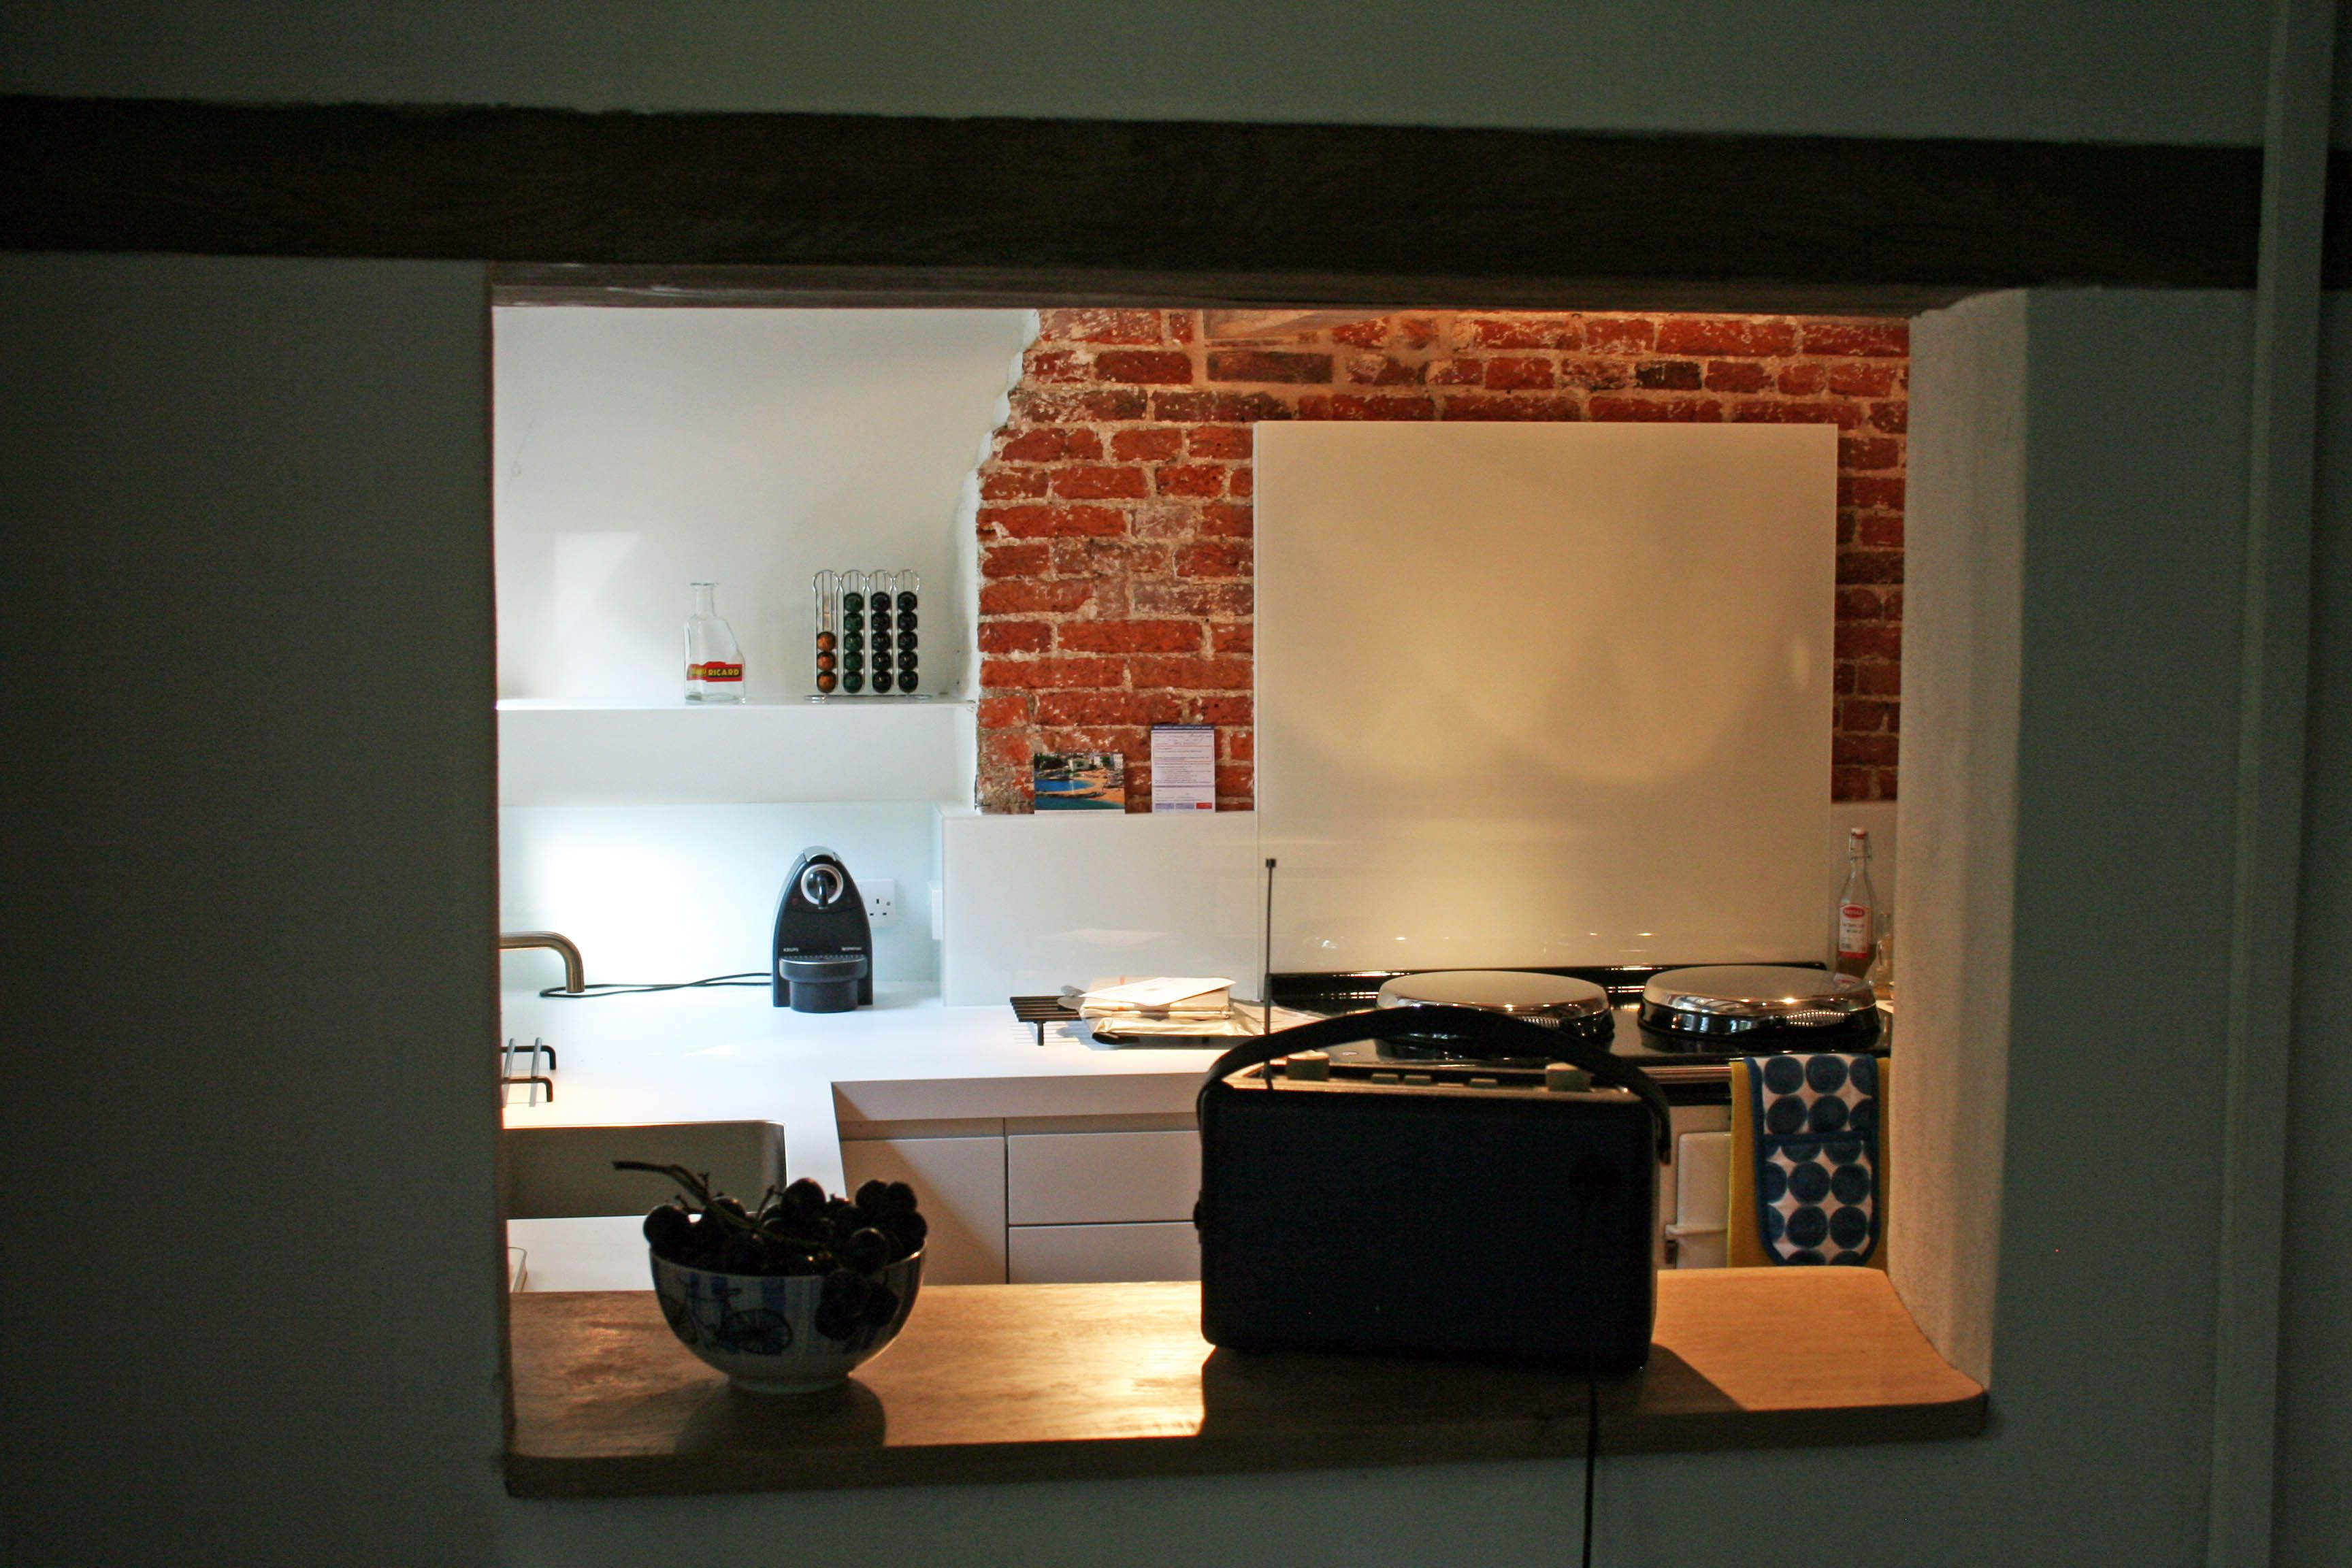 Fußboden Teppich Yasin ~ The service hatch into the dining room was maintained a feature